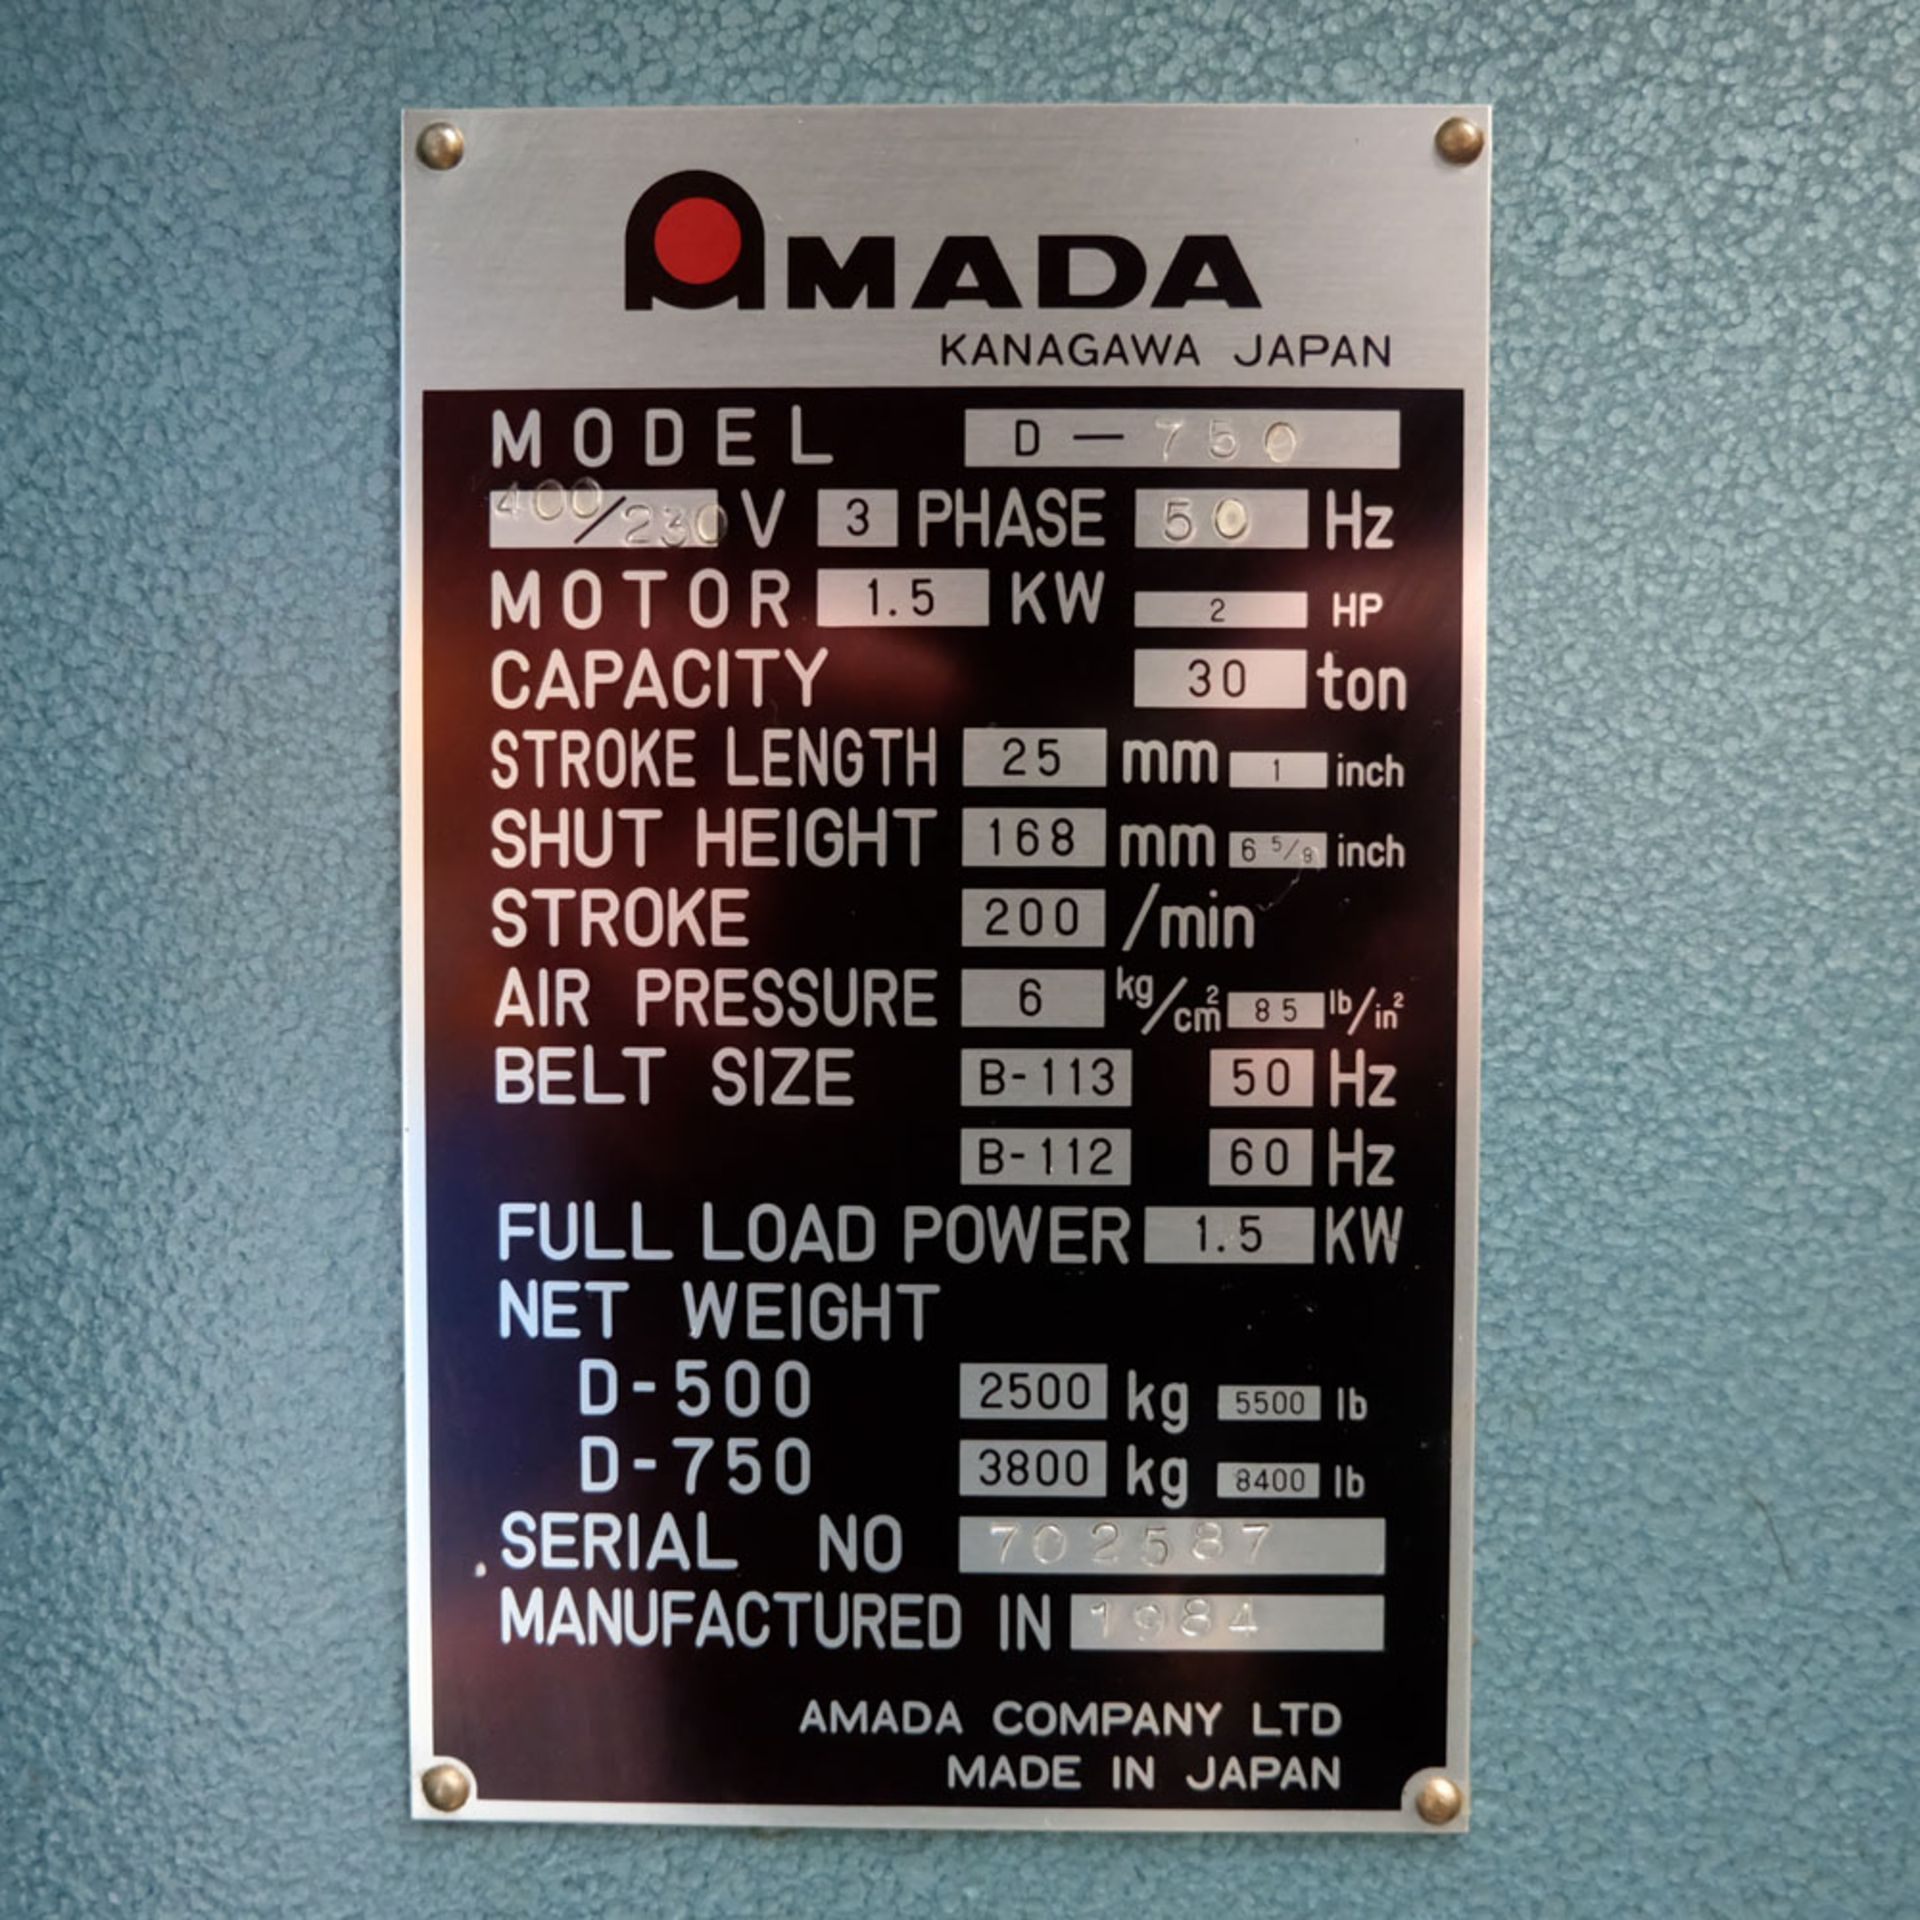 Amada D-750 Duplicator Punching Machine with Tooling and Digital Readout. - Image 7 of 8